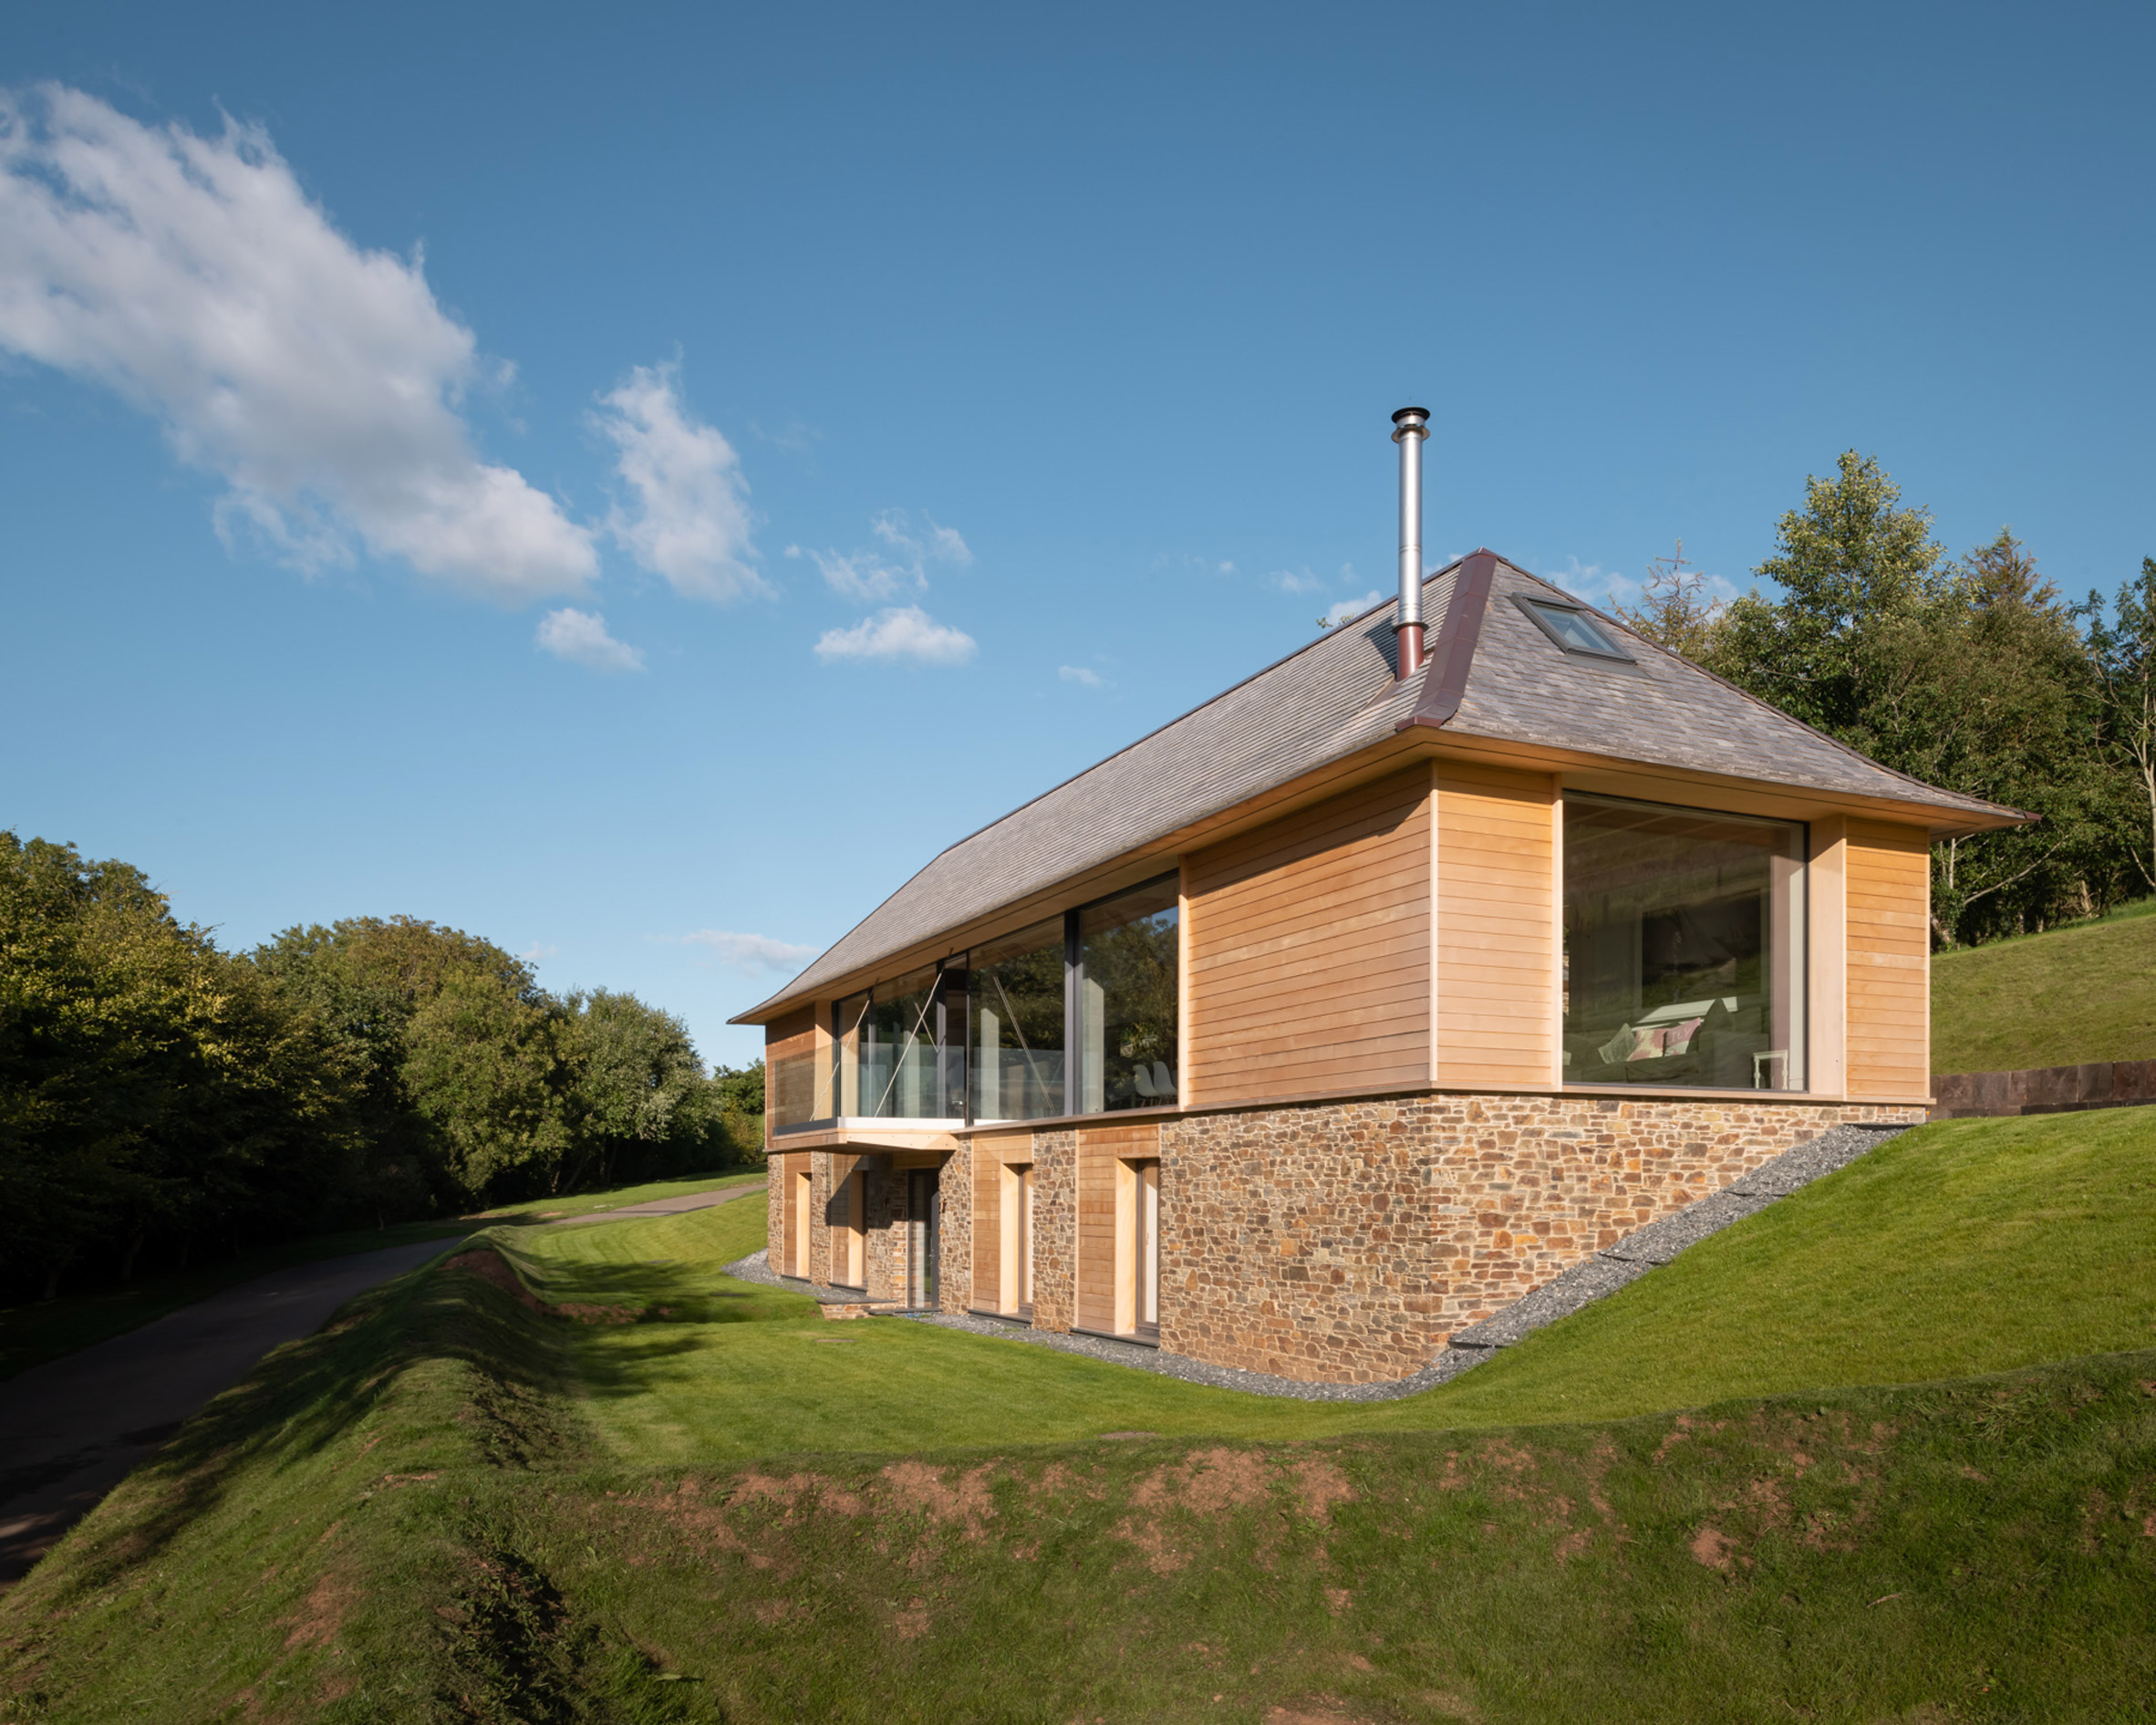 House in Area of Outstanding Natural Beauty overlooking Salcombe Estuary